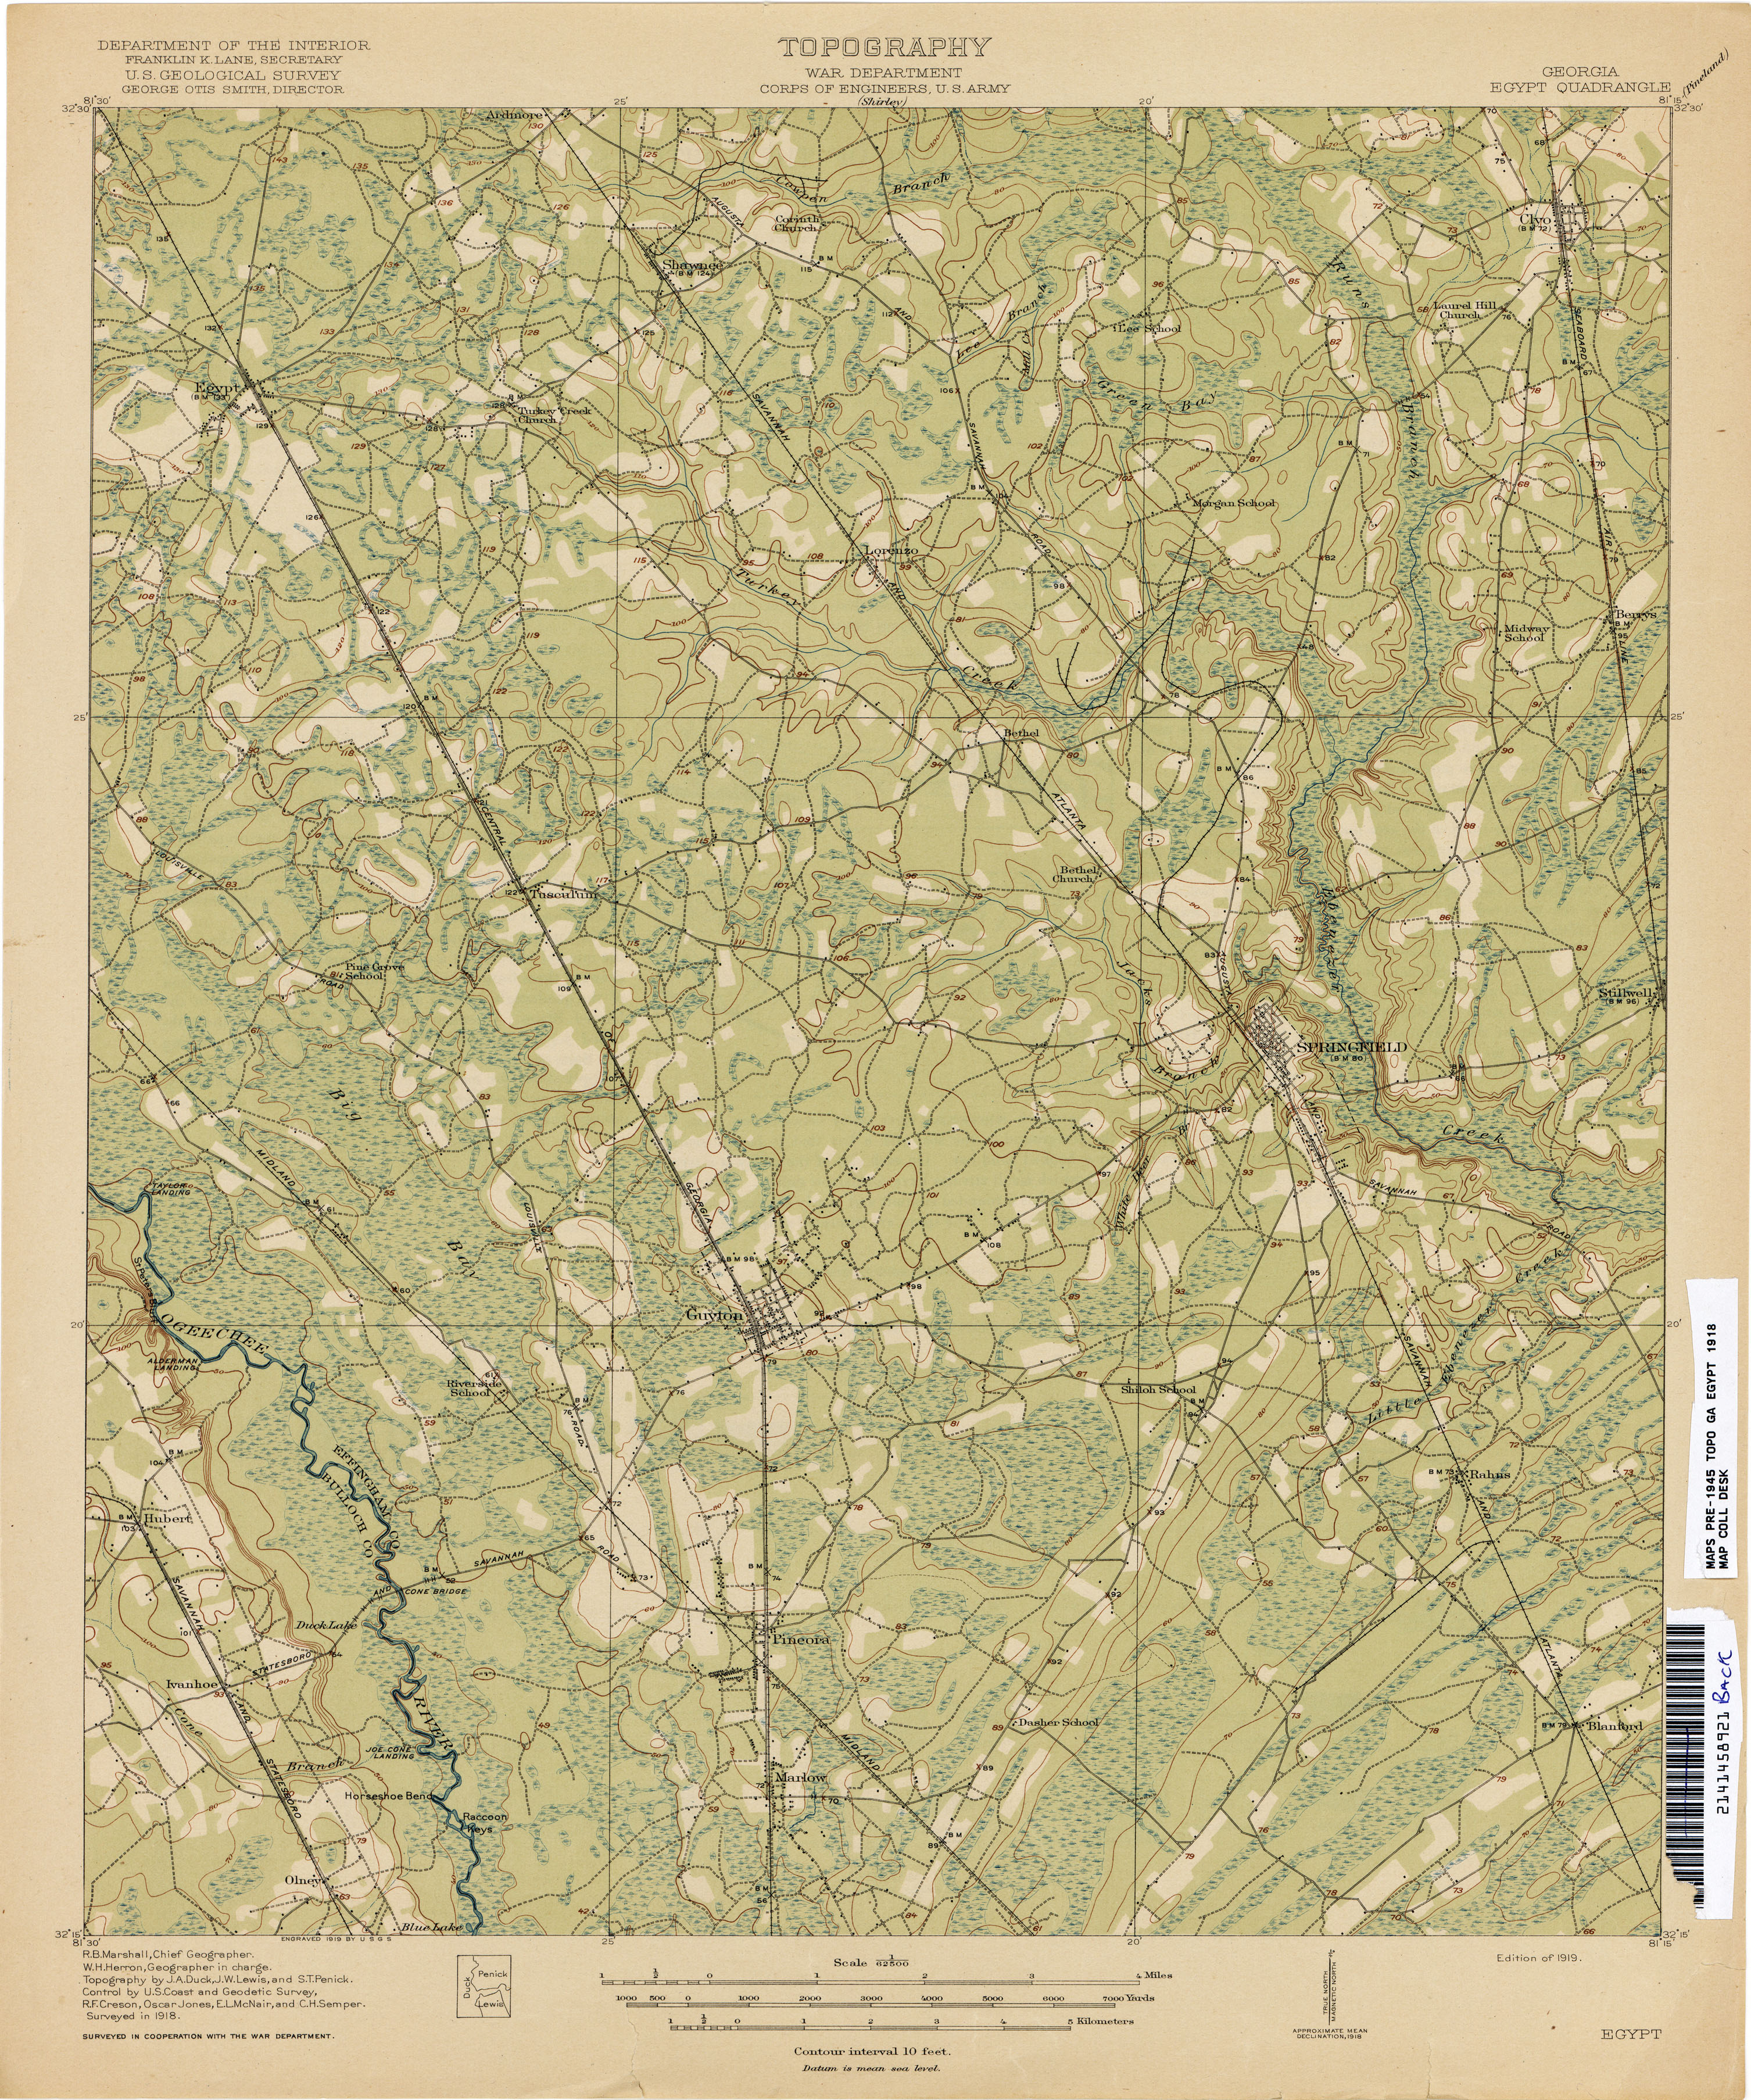 States Topo Map Maps Of The USA The United States Of America Map - Southwest us topographic map